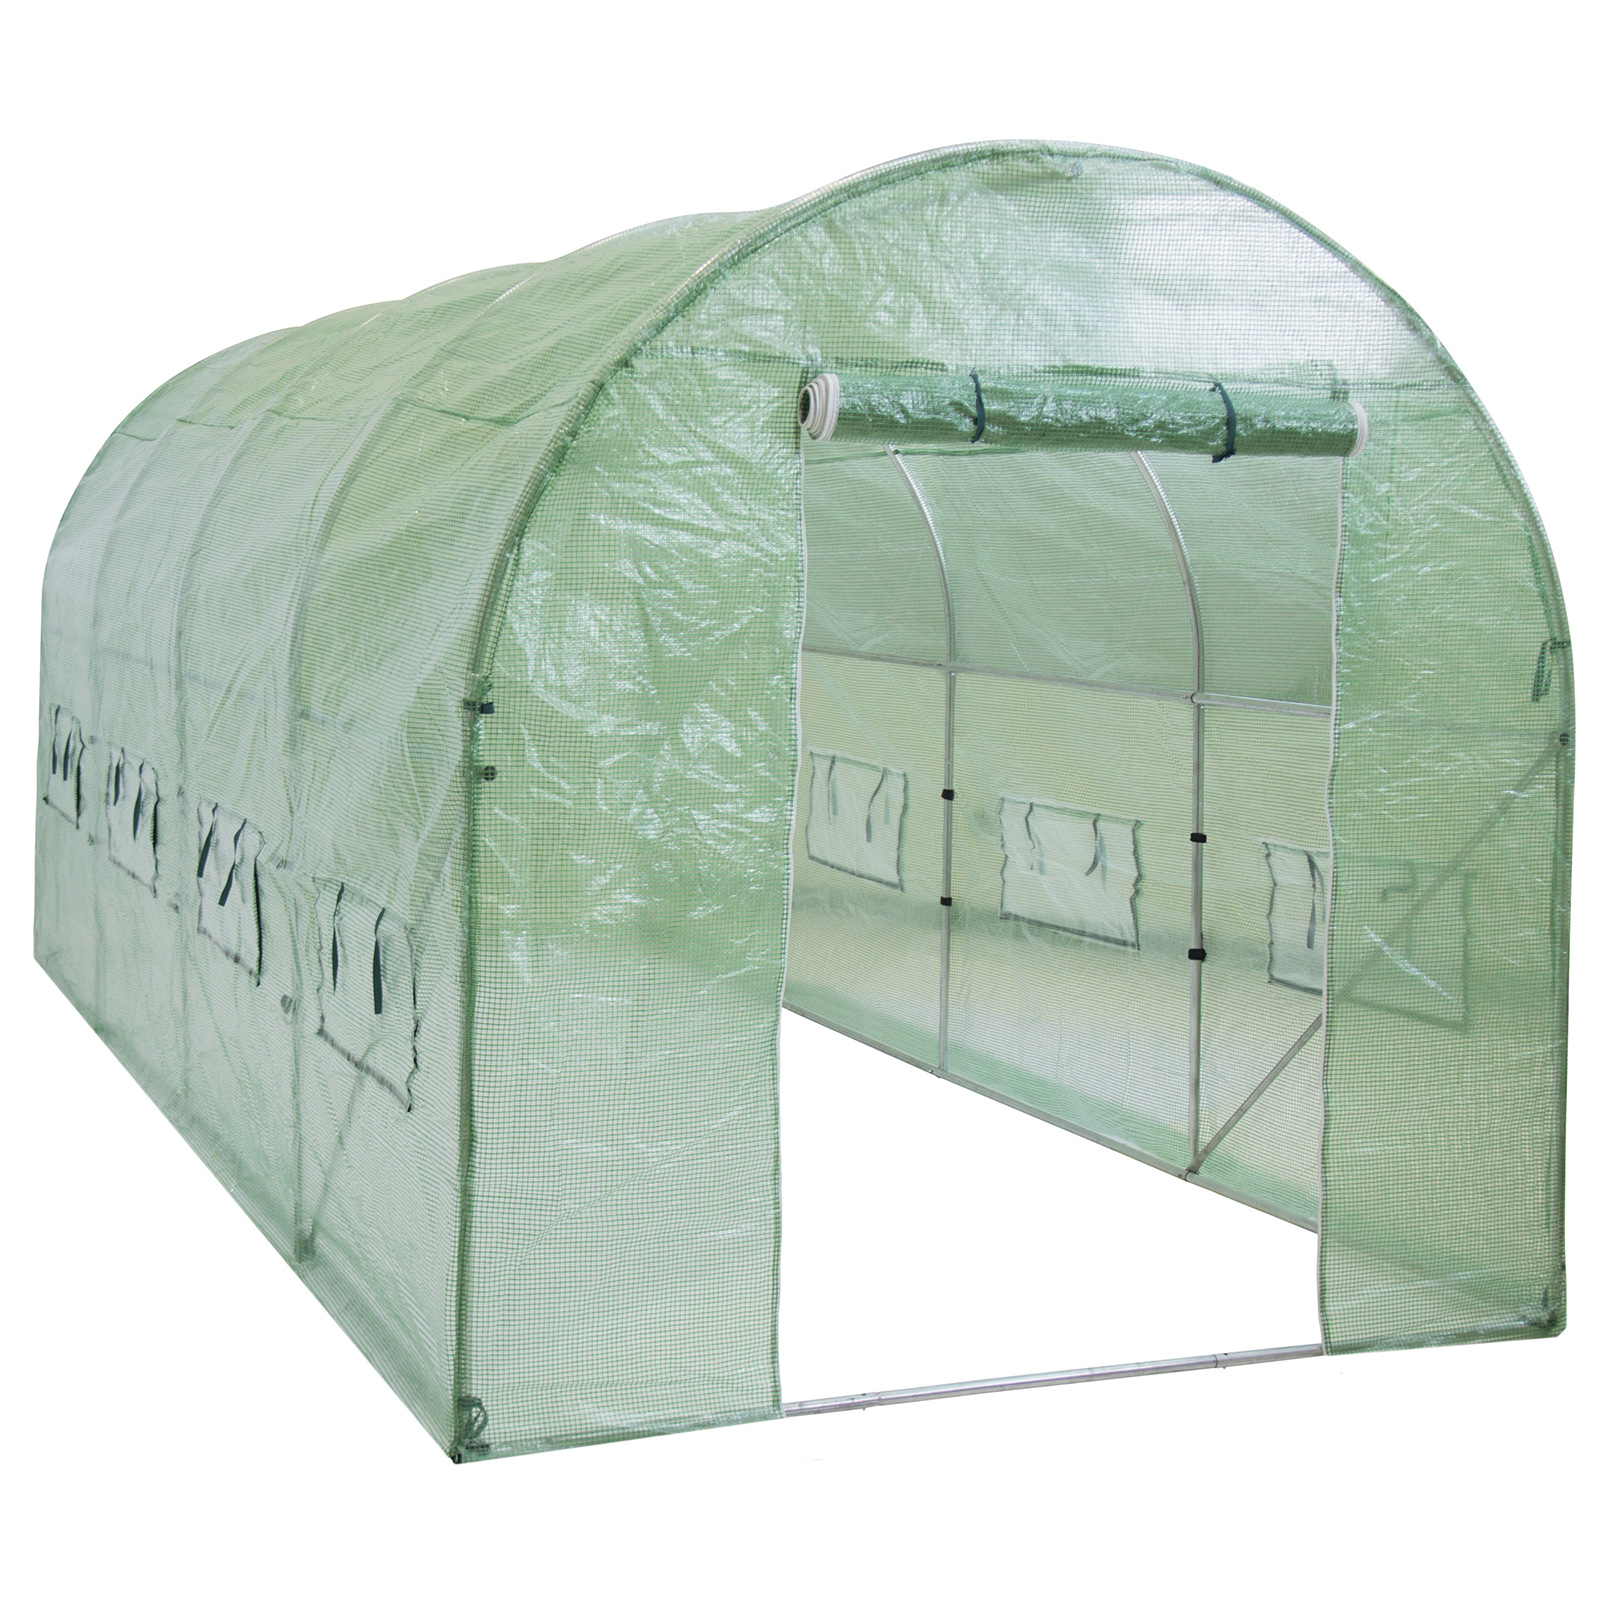 Best Choice Products 15x7x7ft Portable Large Walk In Tunnel Garden Plant Greenhouse Tent w  8 Ventilation Windows by Best Choice Products